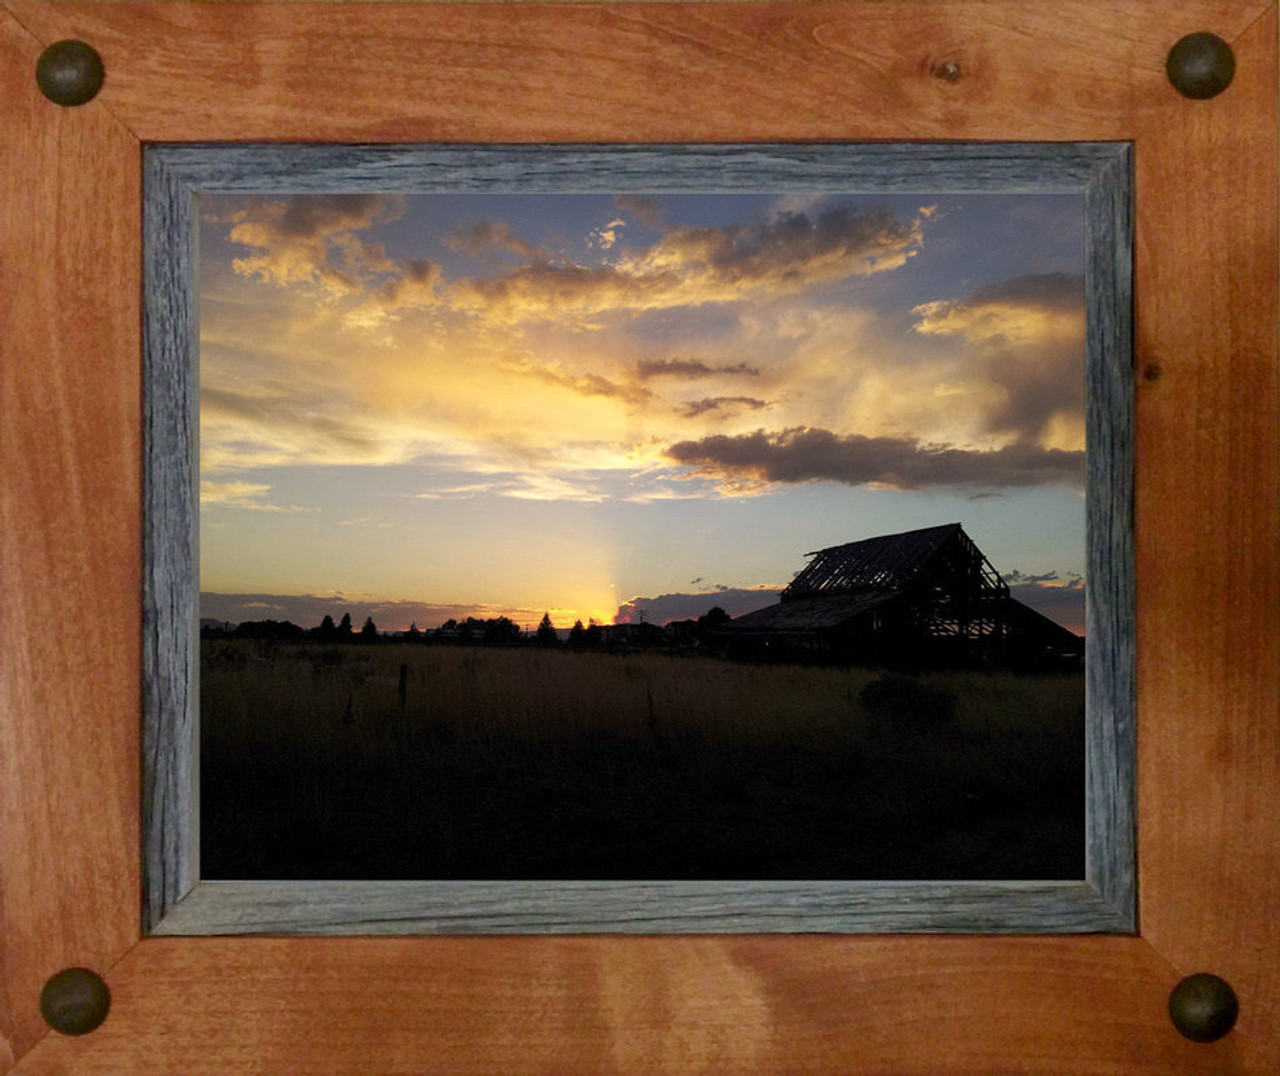 Western Frames 4x6 Wood Frame With Tacks Sagebrush Series